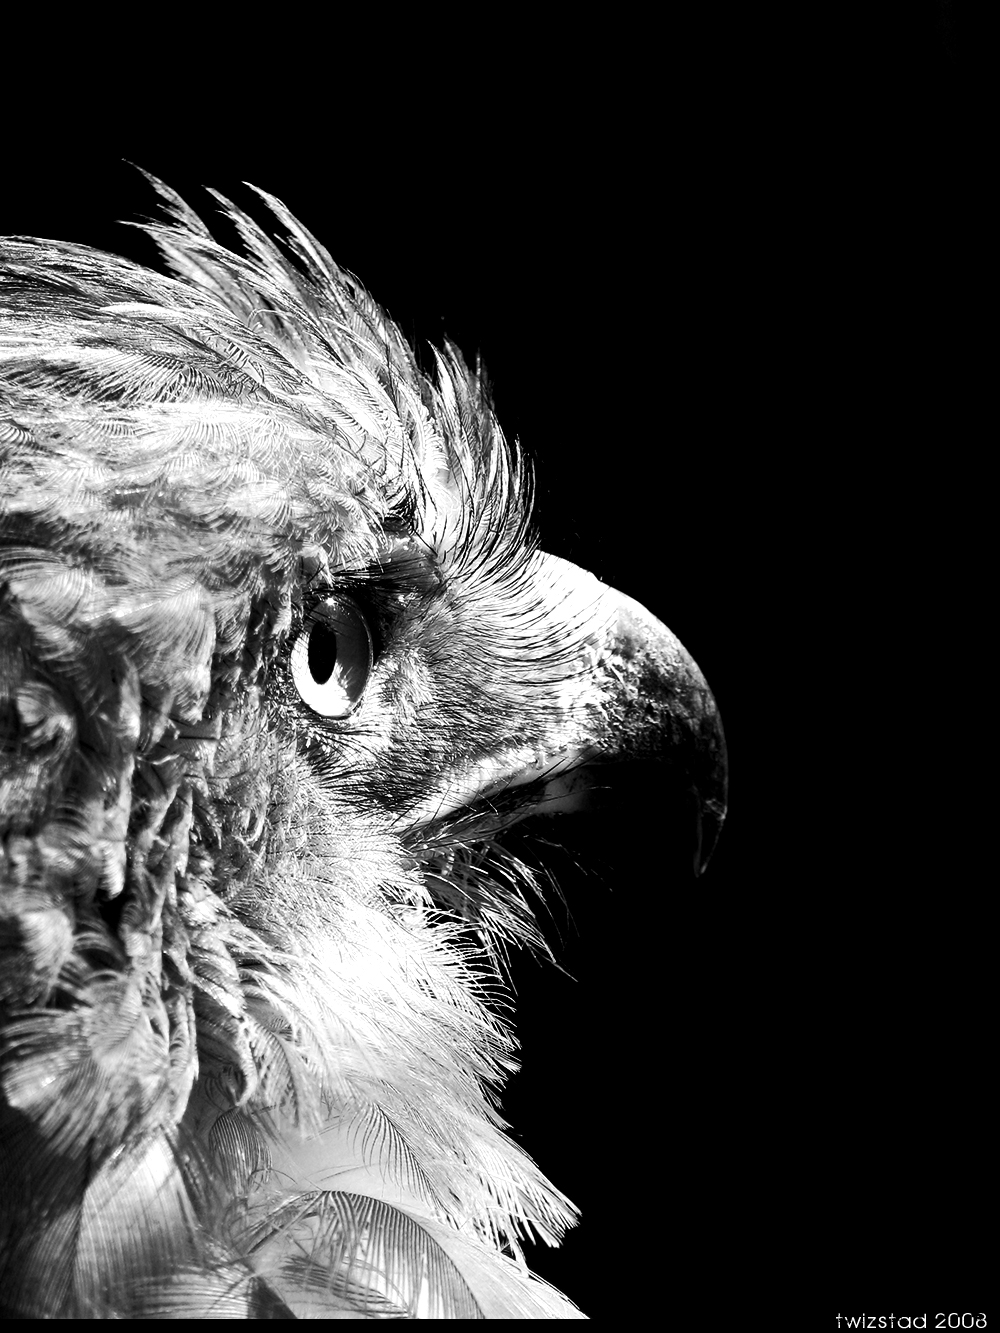 Save to collection follow following unfollow black and white eagle photography